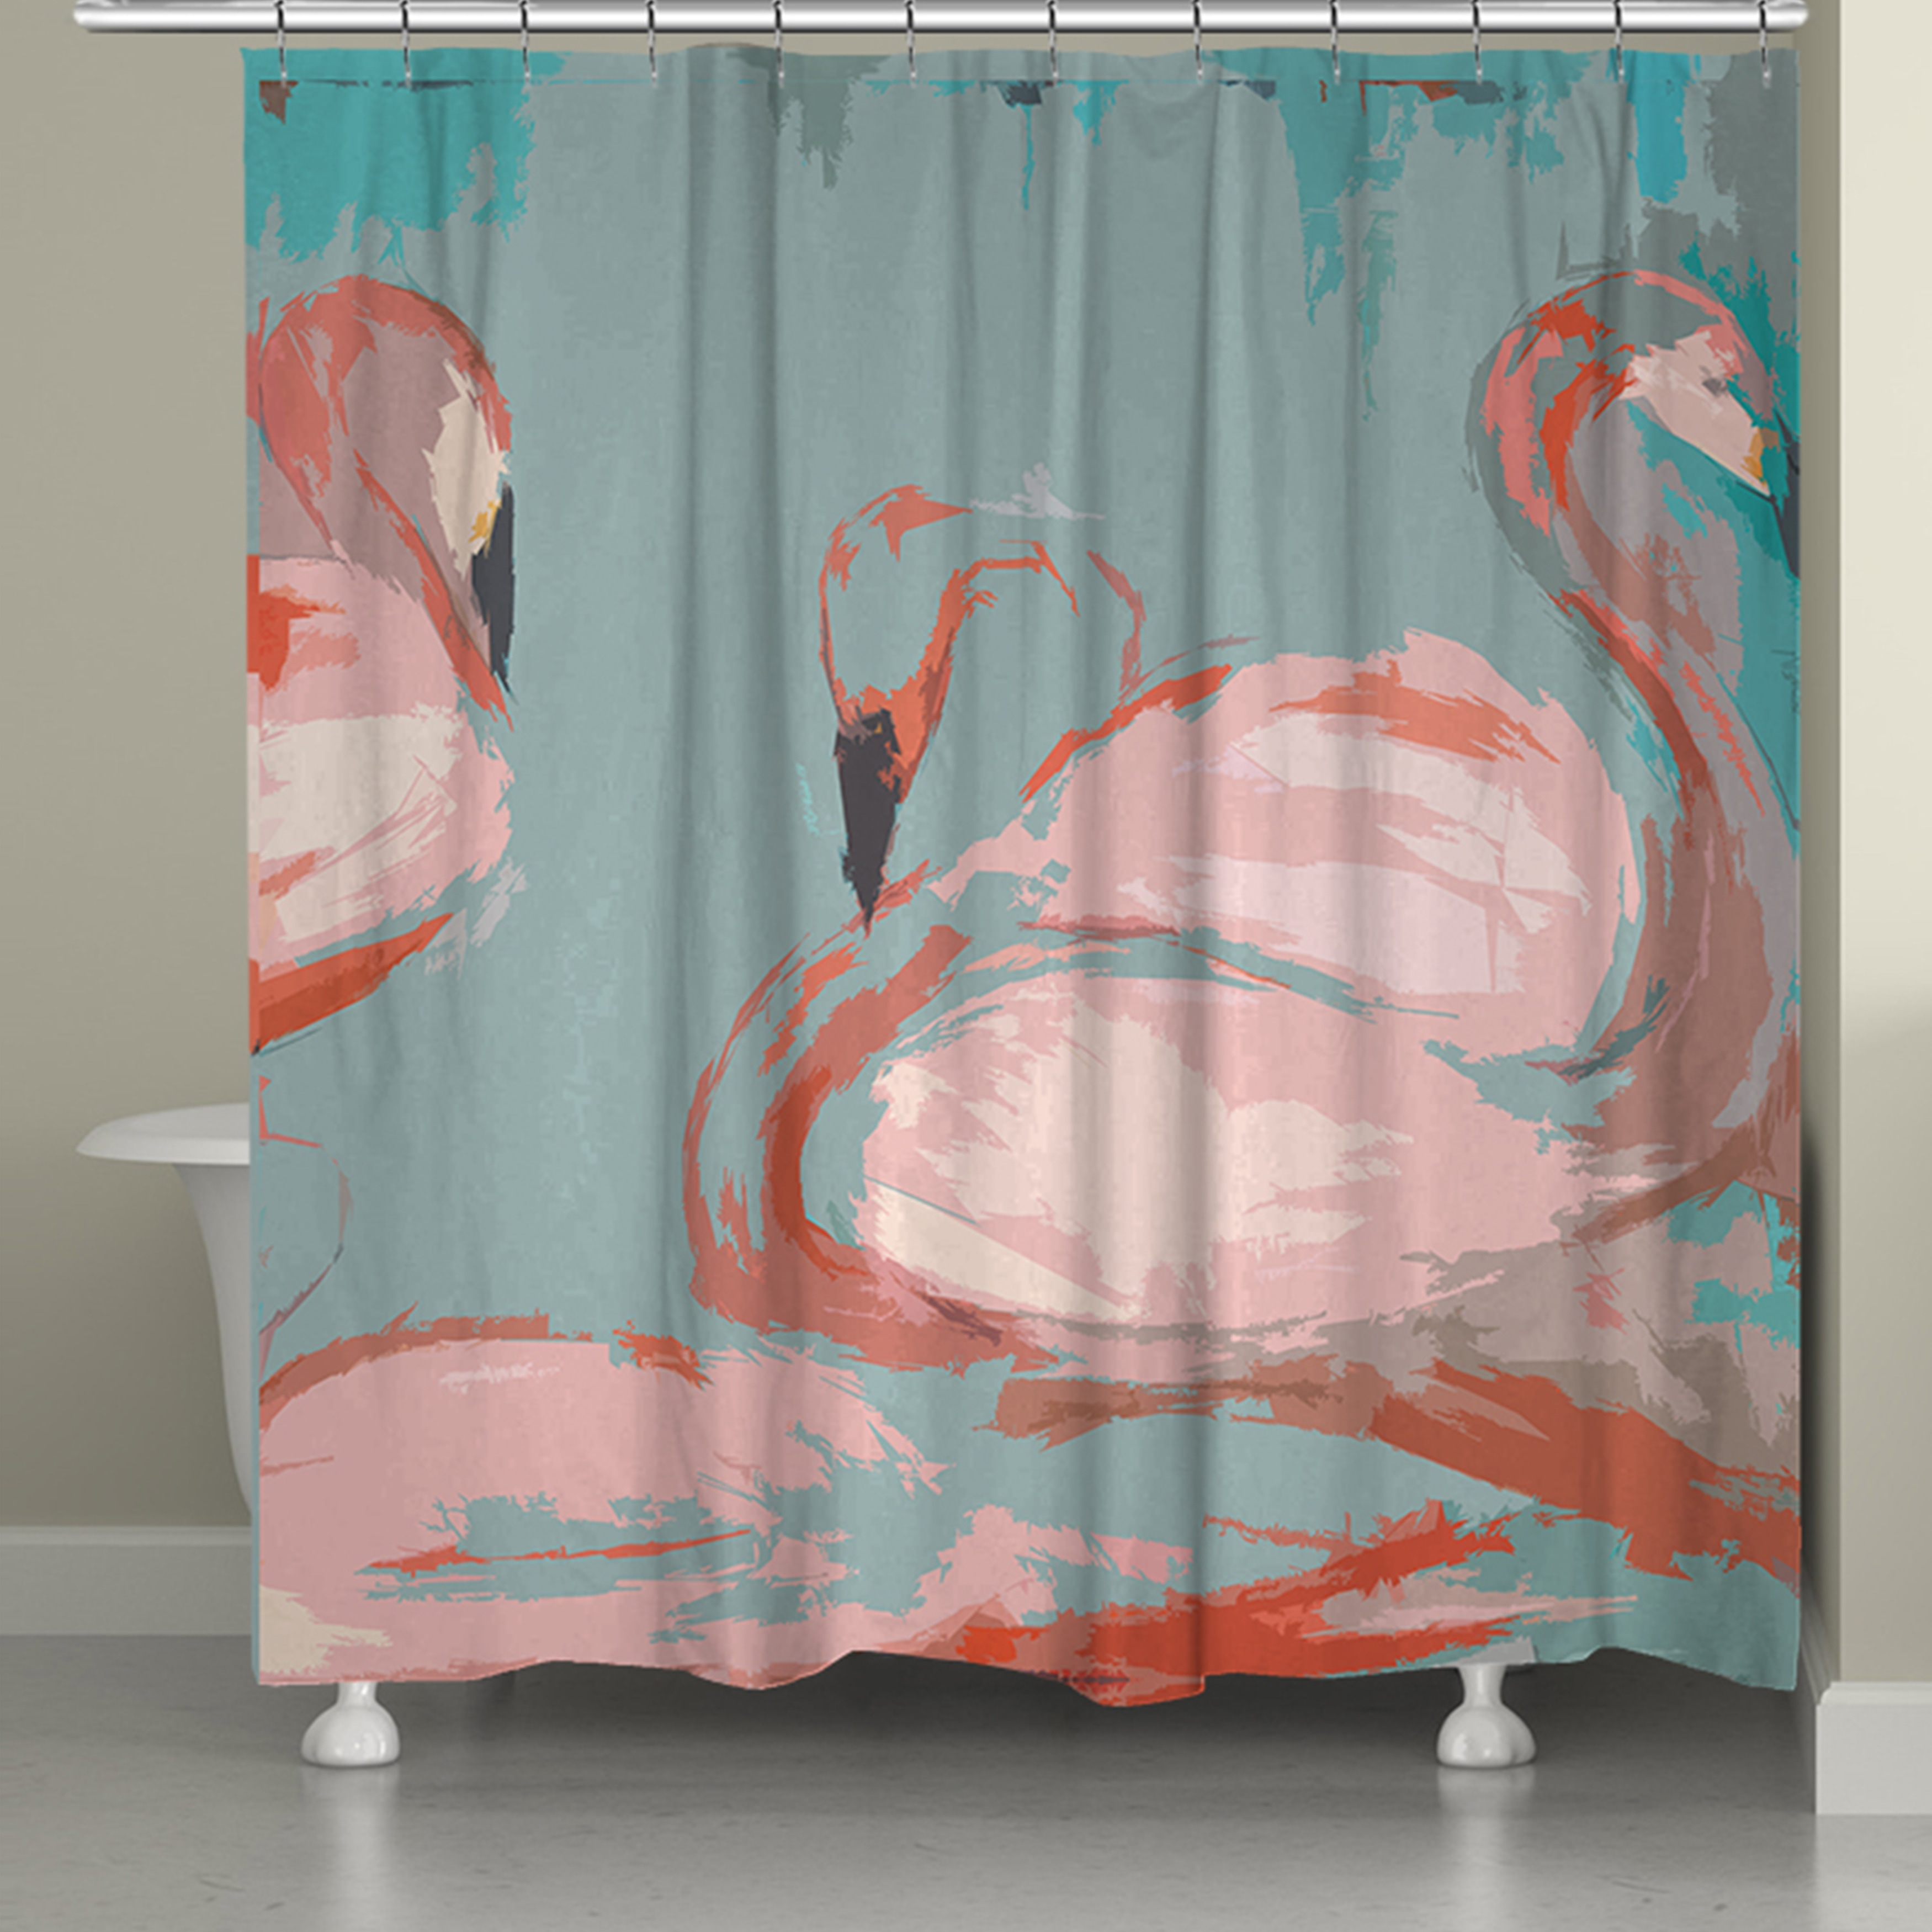 74 Shower Curtain Laural Home Pink Flamingos Shower Curtain 71 Inch X 74 Inch